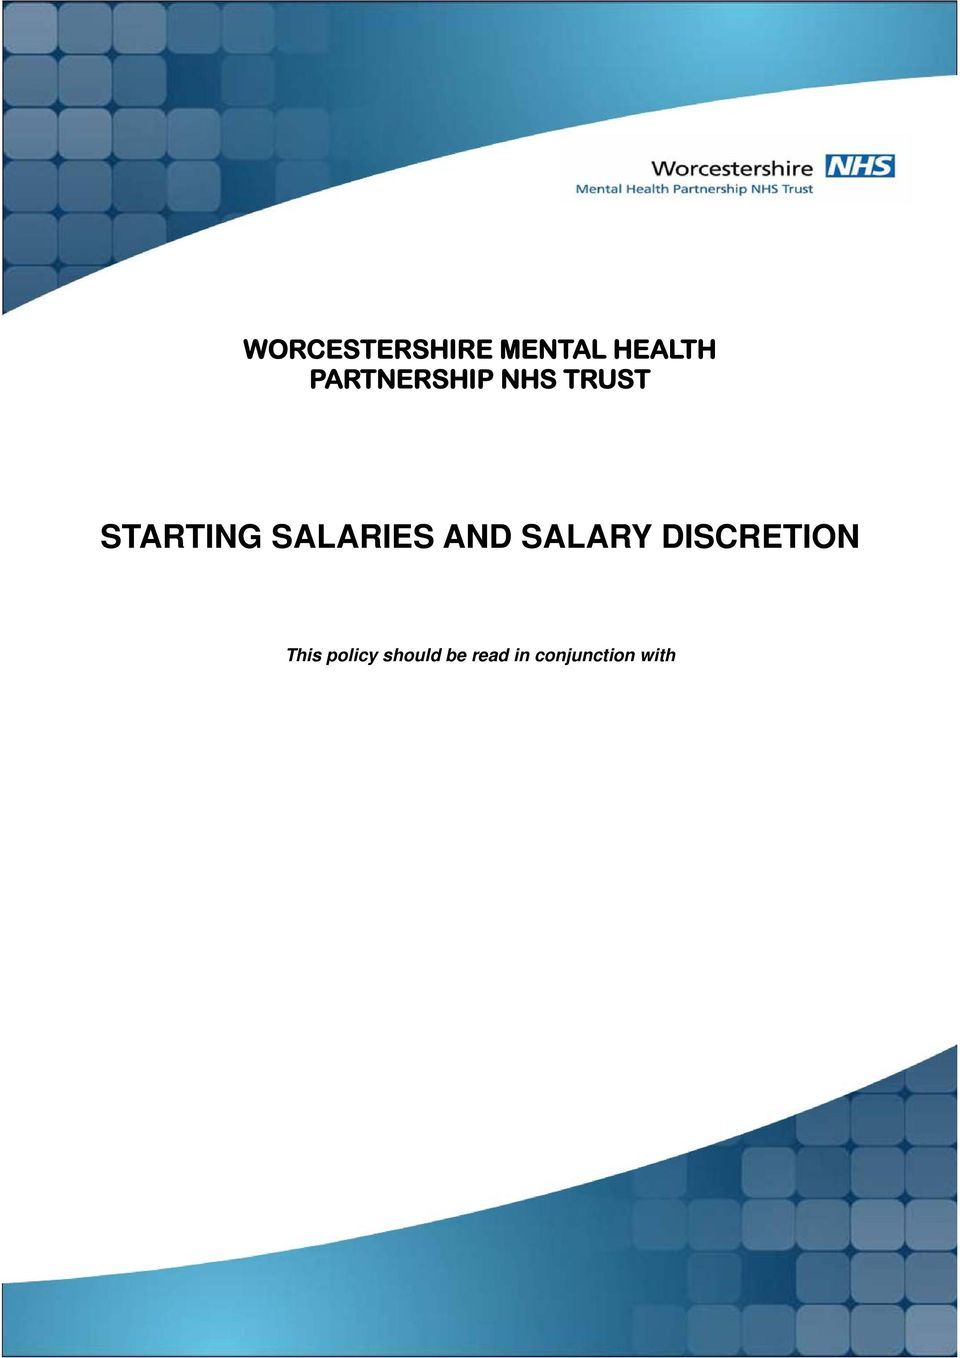 SALARIES AND SALARY DISCRETION